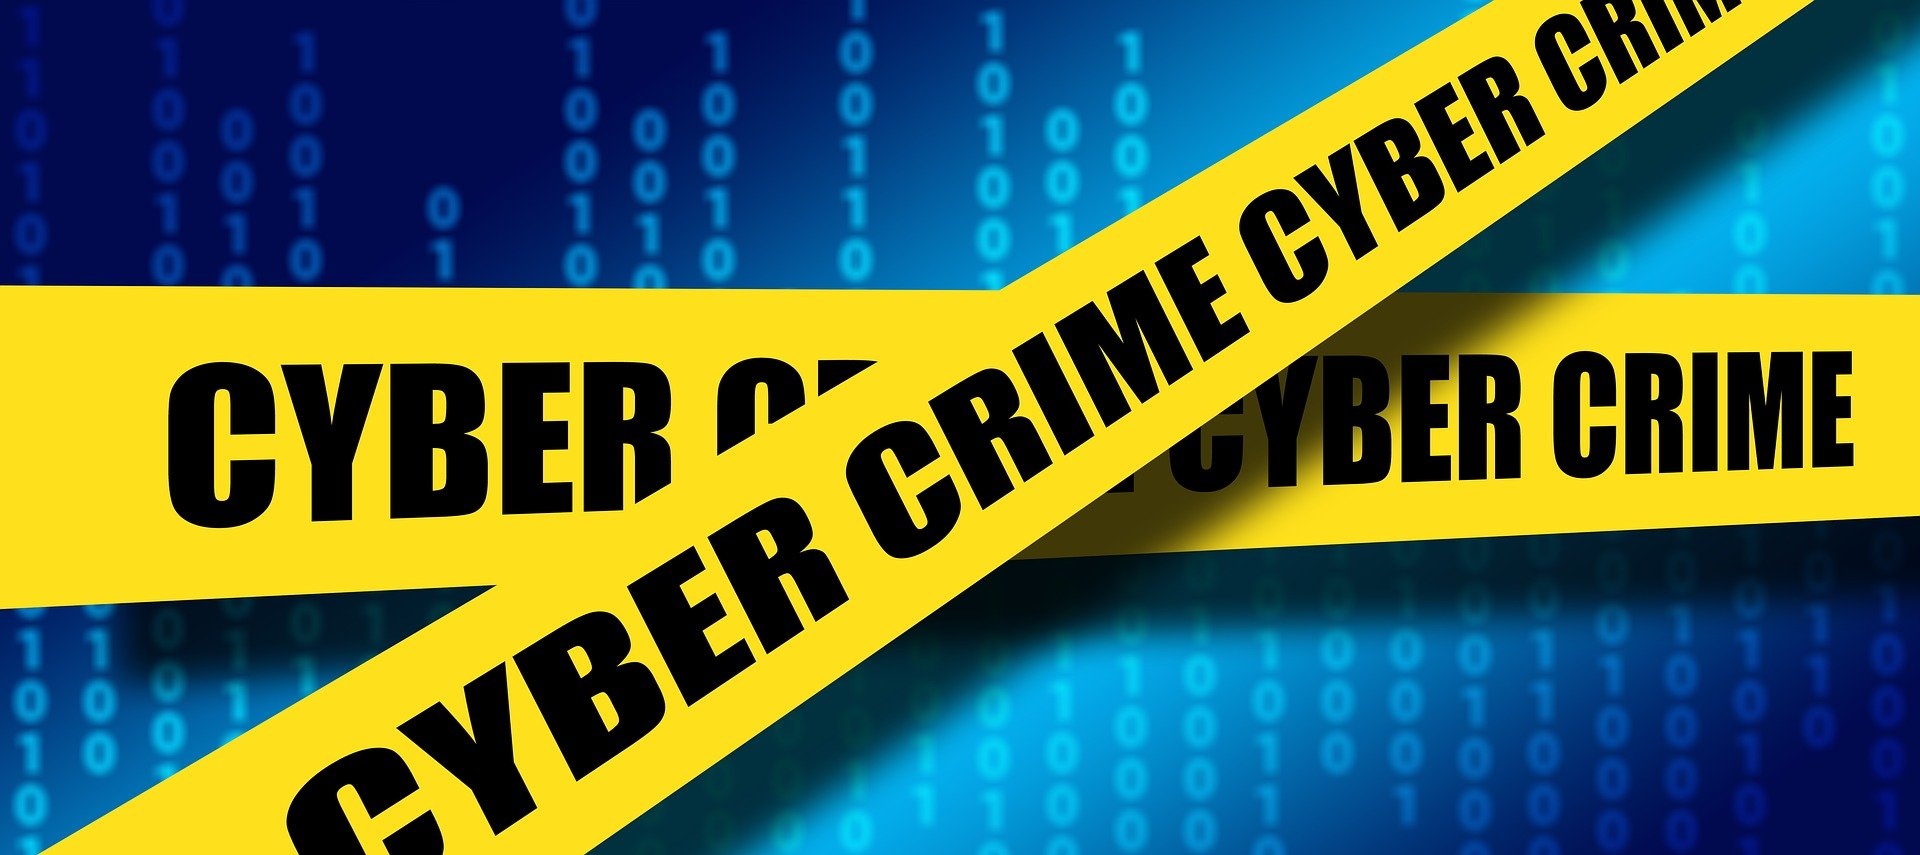 Cybersecurity crime tape